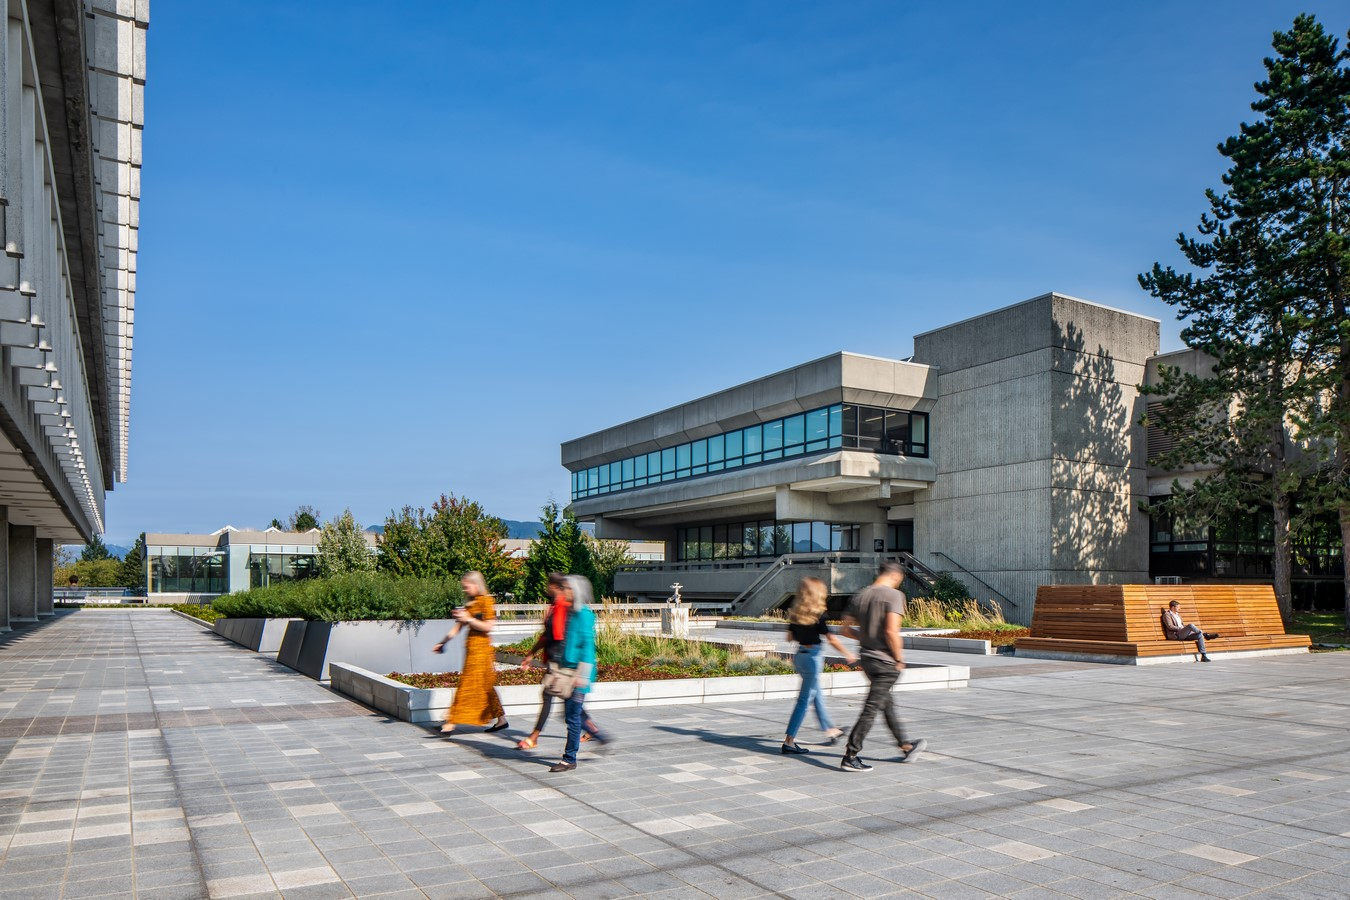 Built in 1965, the Erickson / Massey Simon Fraser University Campus is among the most significant pieces of Canadian architecture. The Plaza serves a double function: as an open-air public space and as a roof sheltering education spaces beneath.: Sheet 3